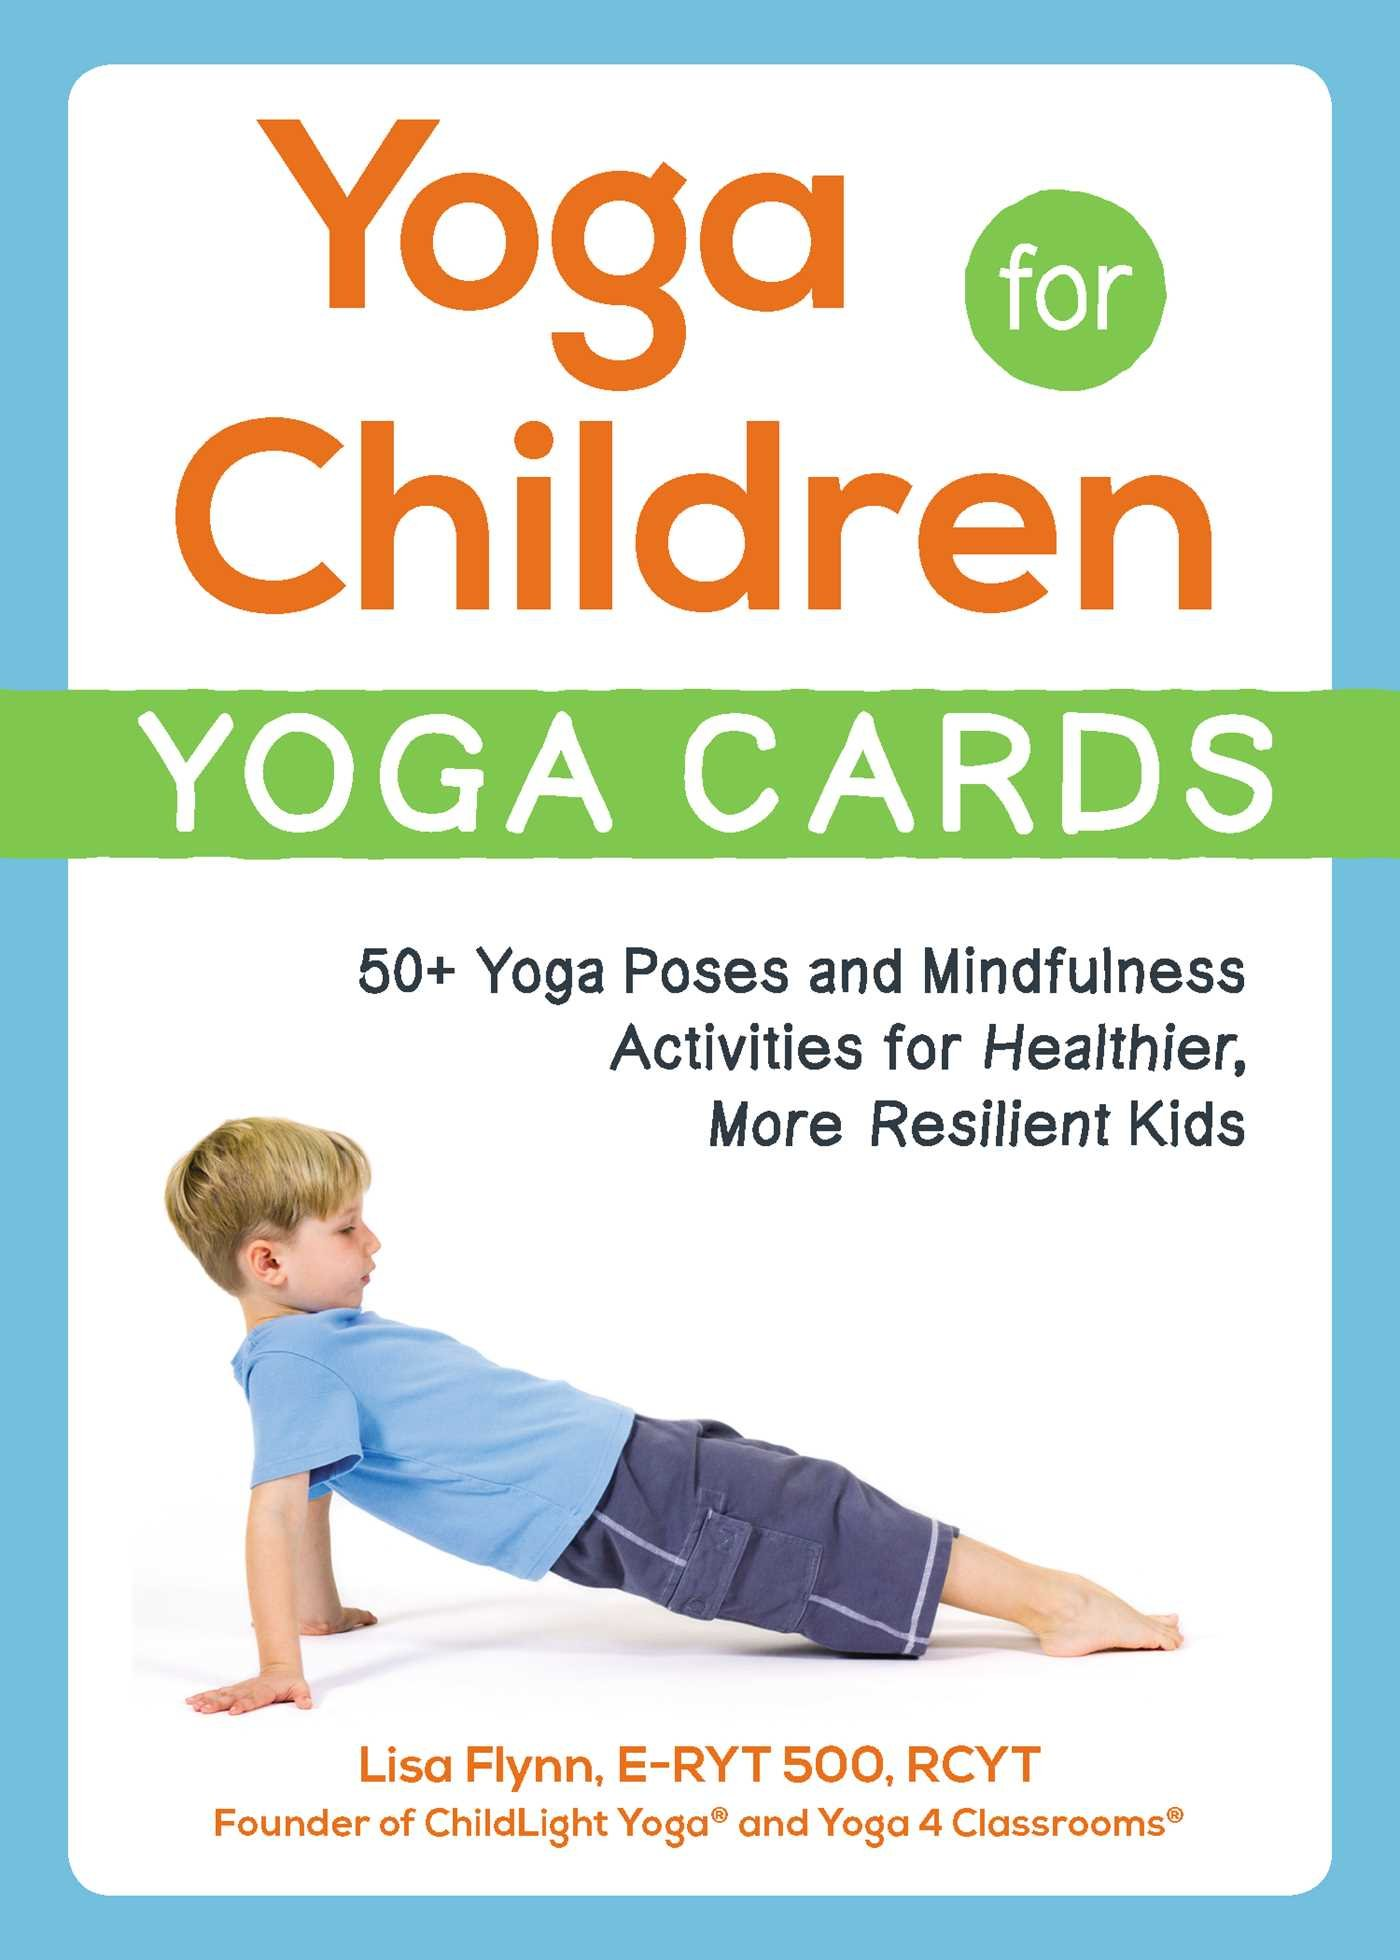 Yoga For Children Yoga Cards 50 Yoga Poses And Mindfulness Activities For Healthier More Resilient Kids Flynn Lisa 9781507208236 Amazon Com Books